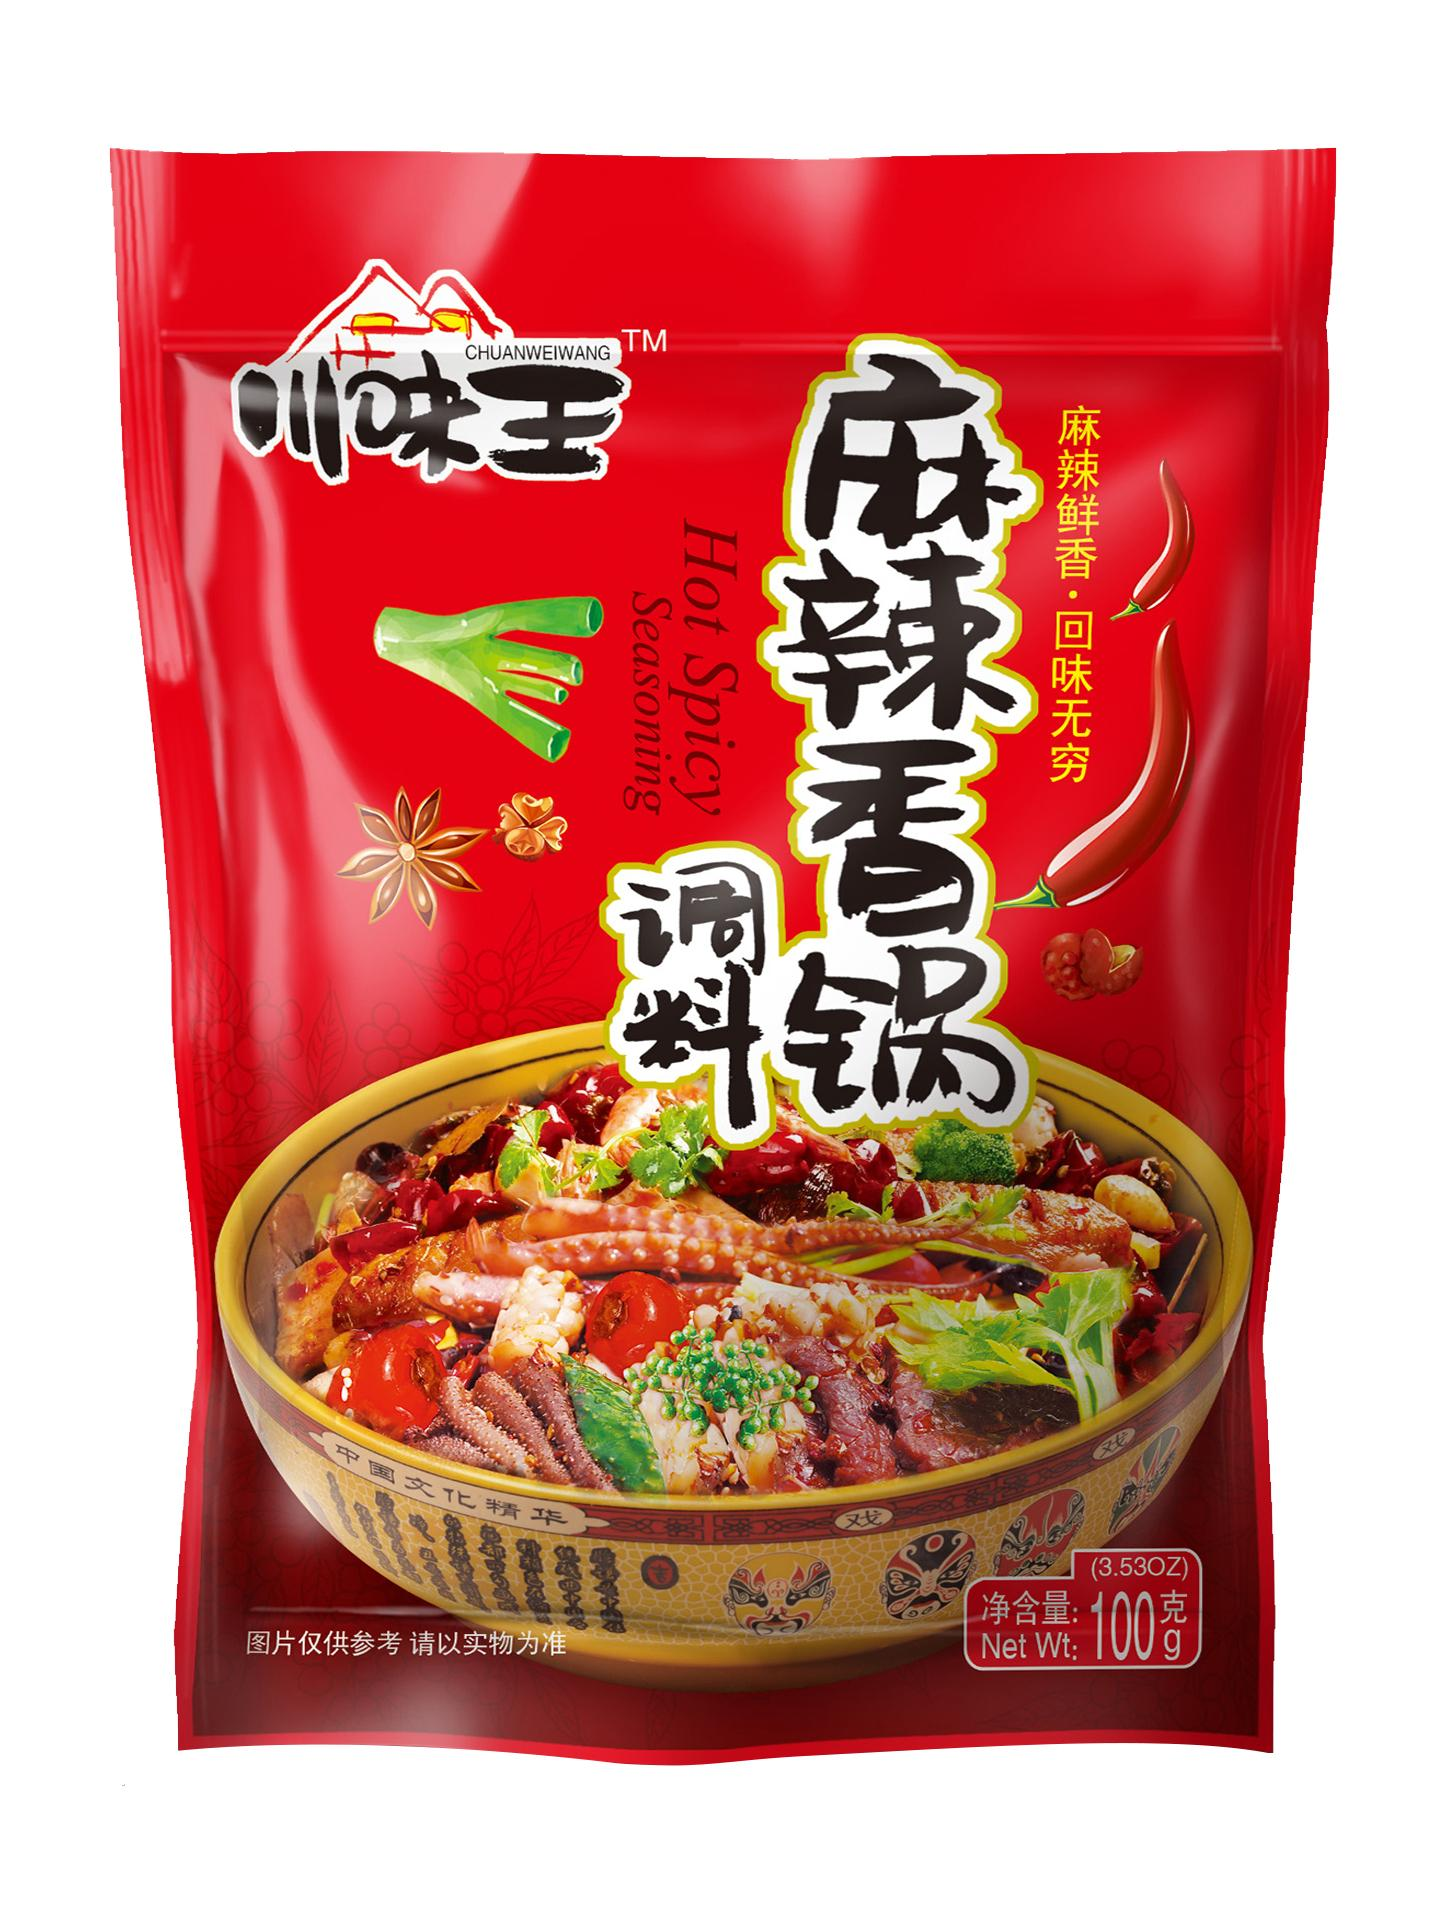 川味王 麻辣香锅 Hot & Spicy Mala Stir-Fry Pot - Ma La Xiang Guo Seasoning - 100g - Chuan Wei Wang By Sin Wah Thong Liquor Company.